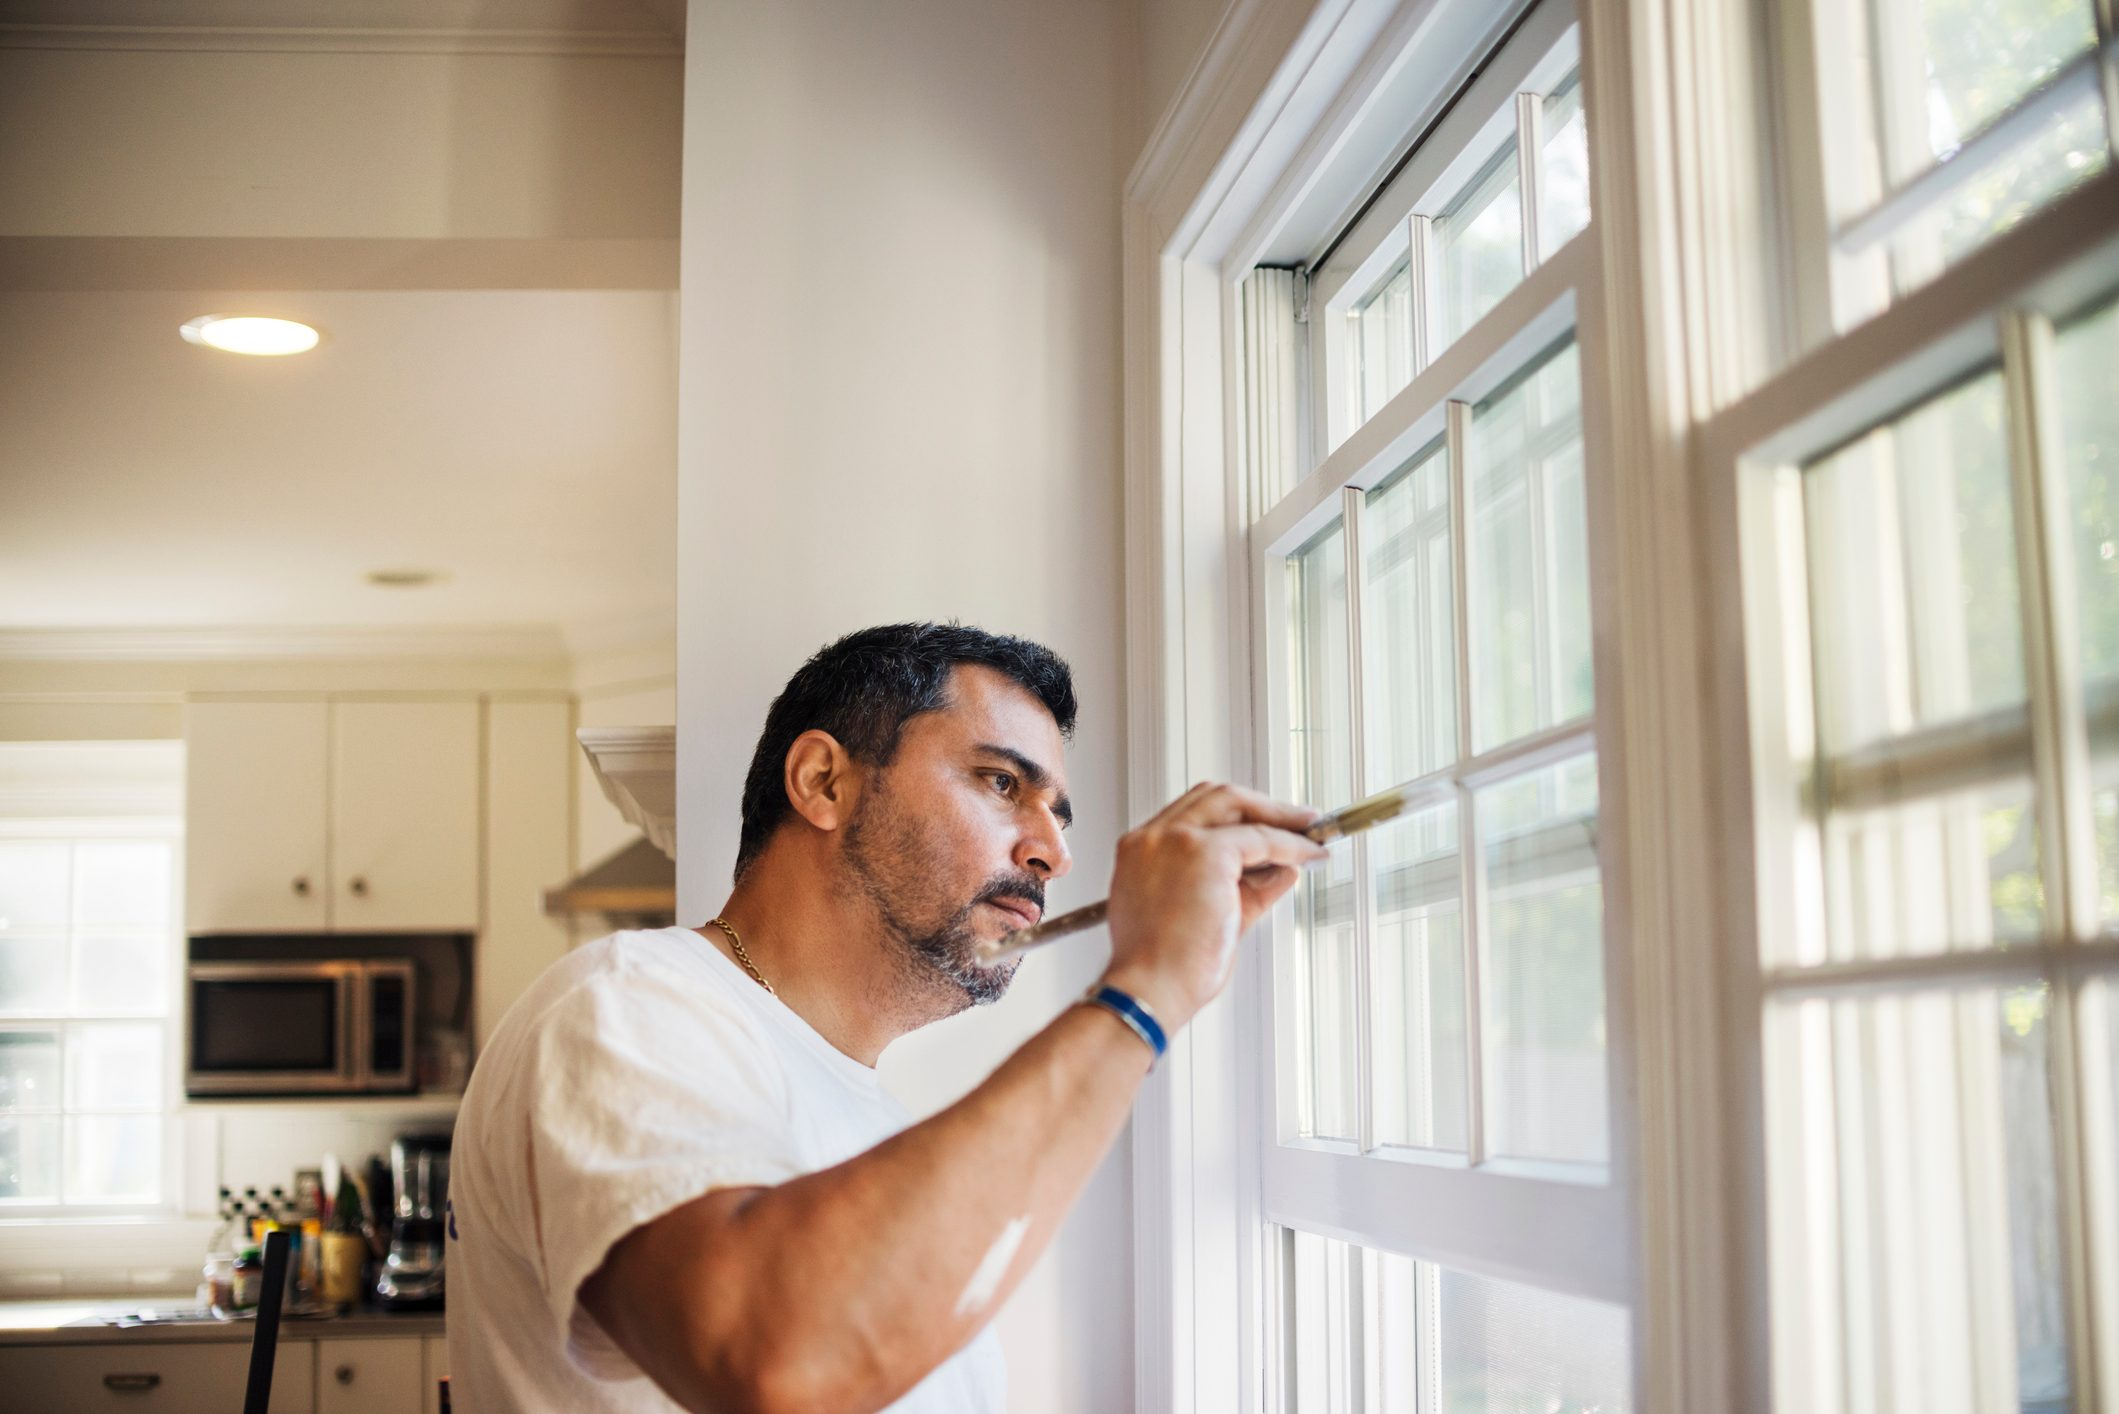 Side view of man painting window frame at home